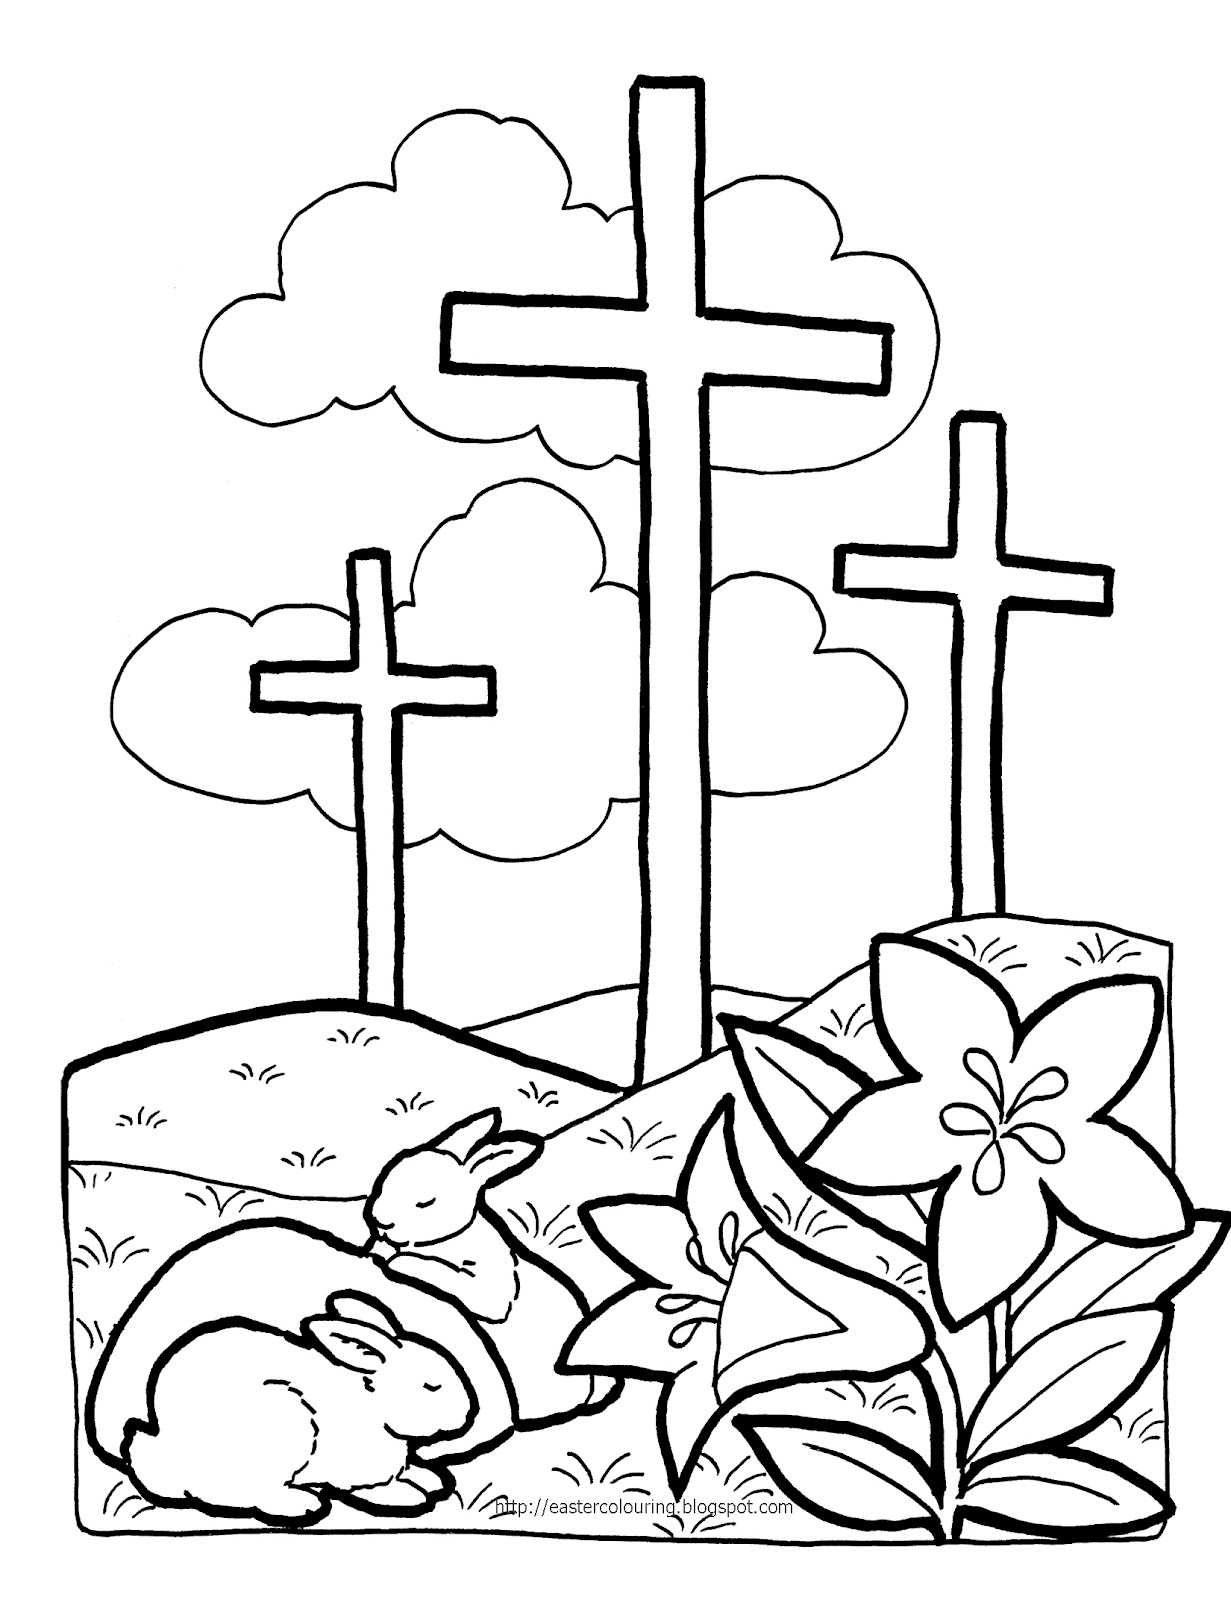 Religious coloring pages for preschoolers - Printable Christian Coloring Pages